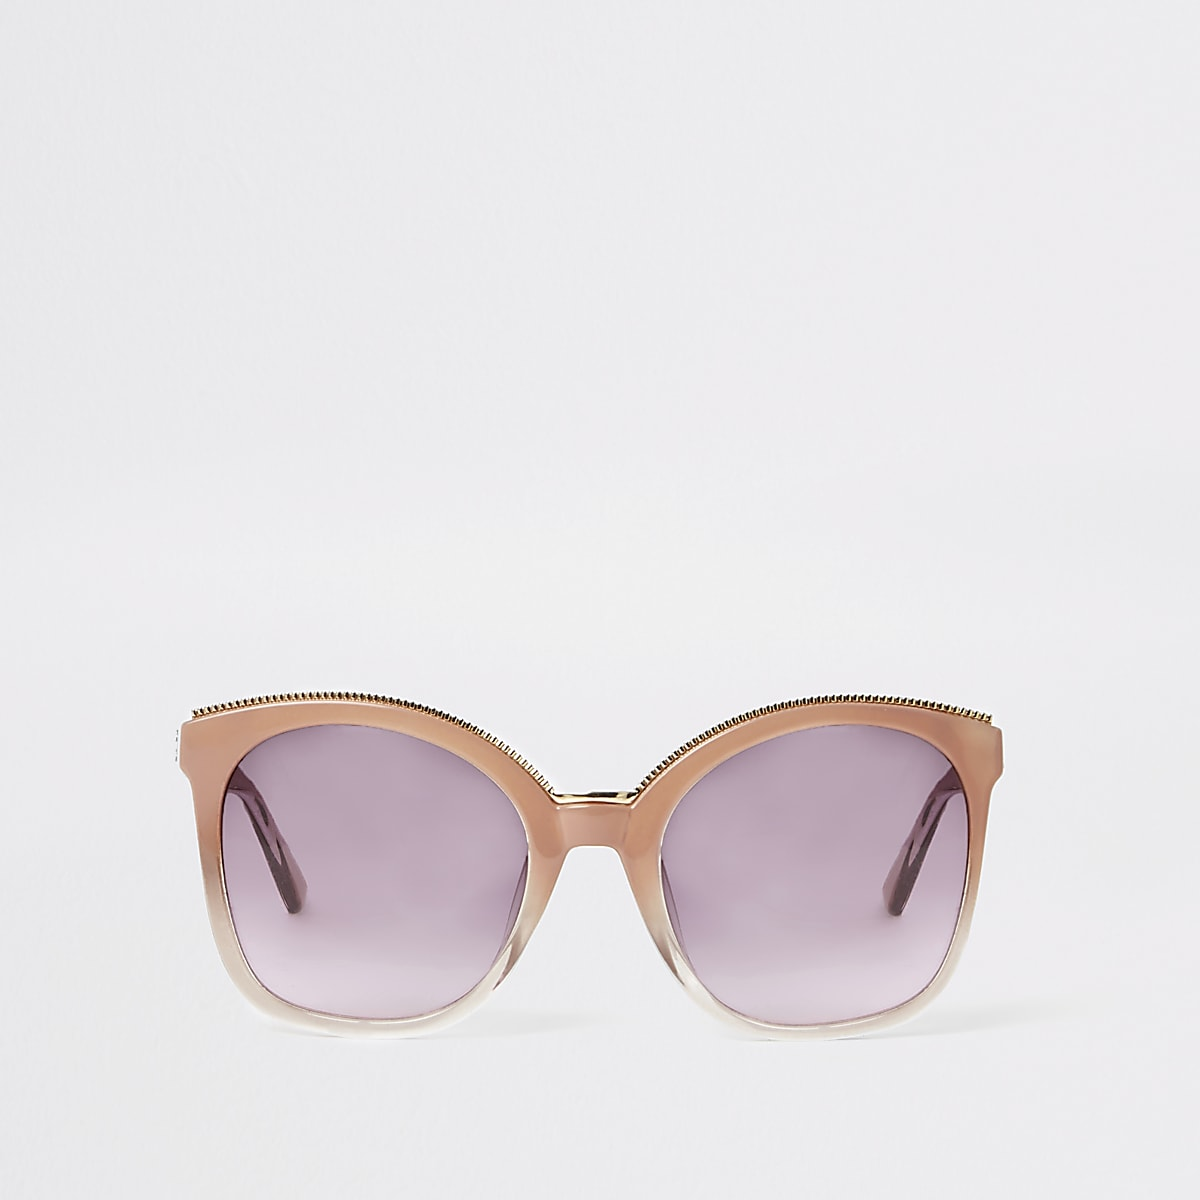 Pink oversized glam sunglasses